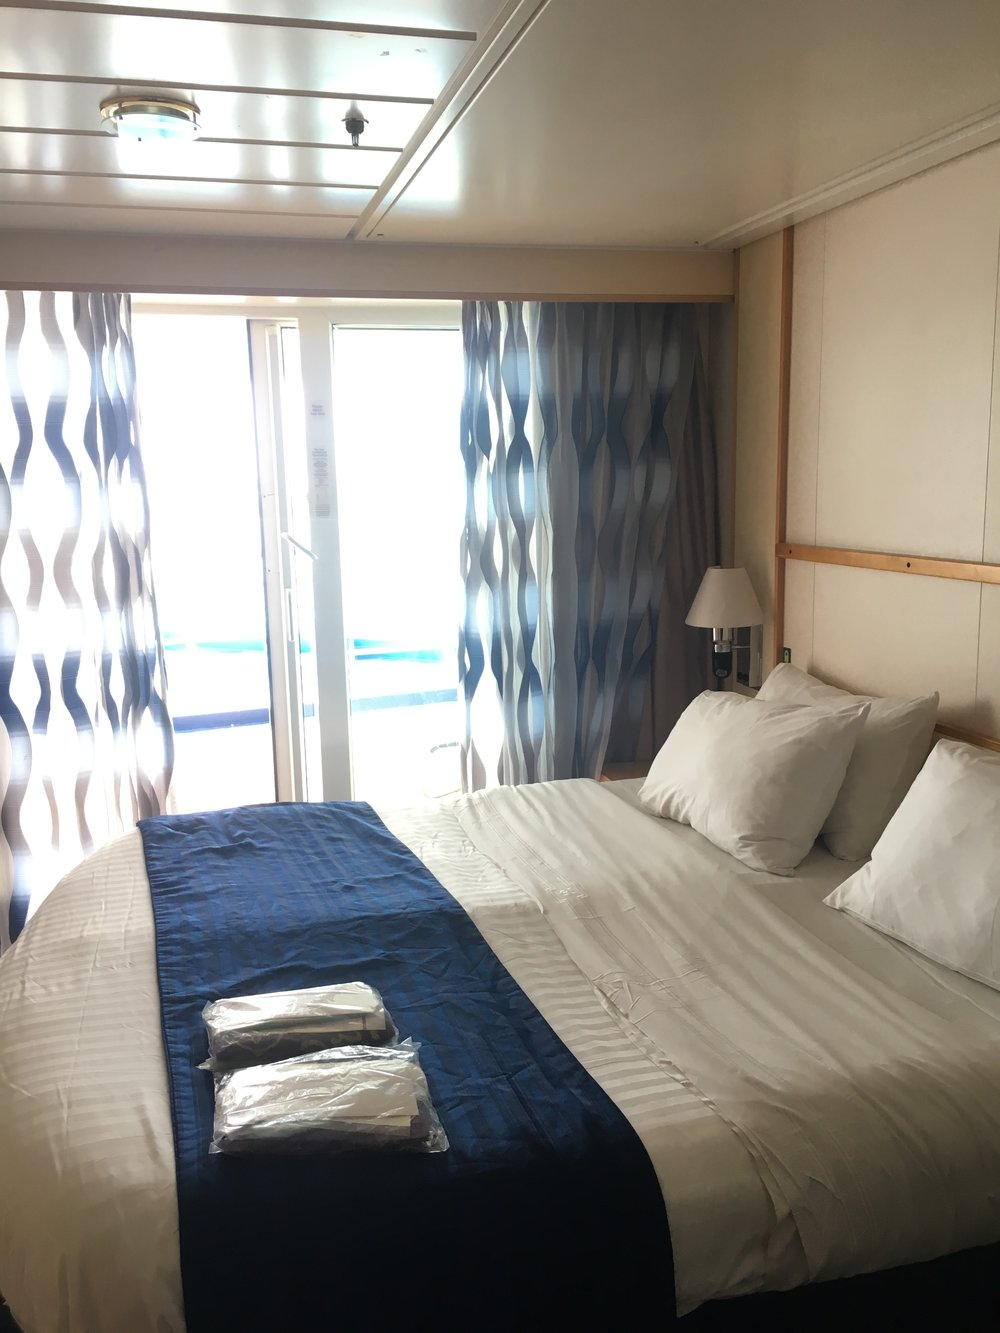 Same comfy cabins, this one a standard Ocean View Balcony on Navigator of the seas.